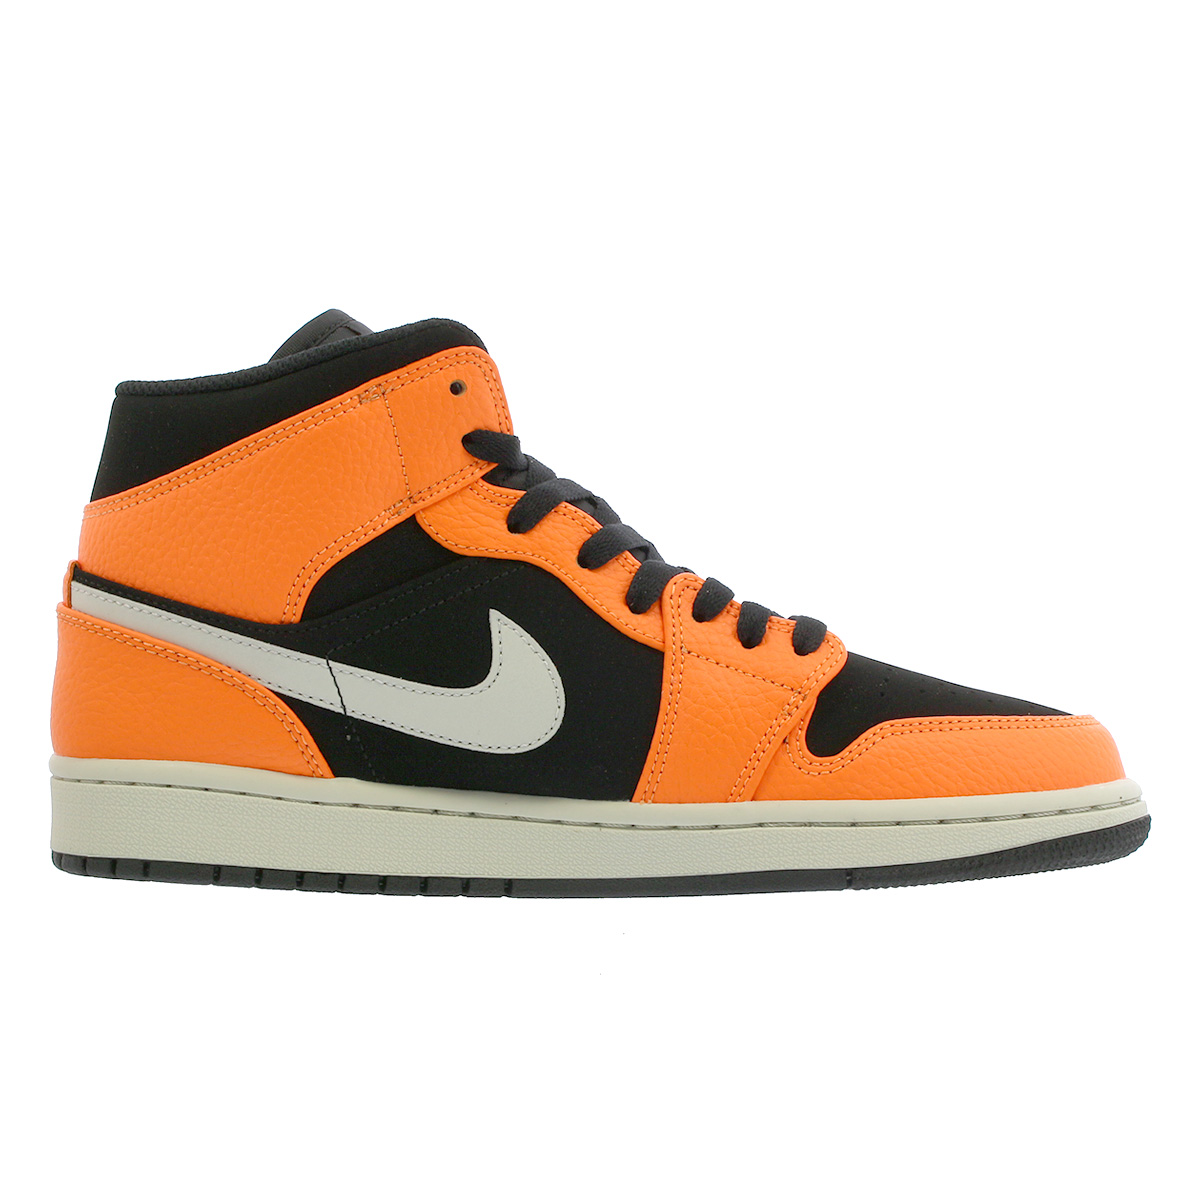 sale retailer 2ae88 ed7d0 NIKE AIR JORDAN 1 MID Nike Air Jordan 1 mid BLACK CONE LIGHT BONE ORANGE  554,724-062